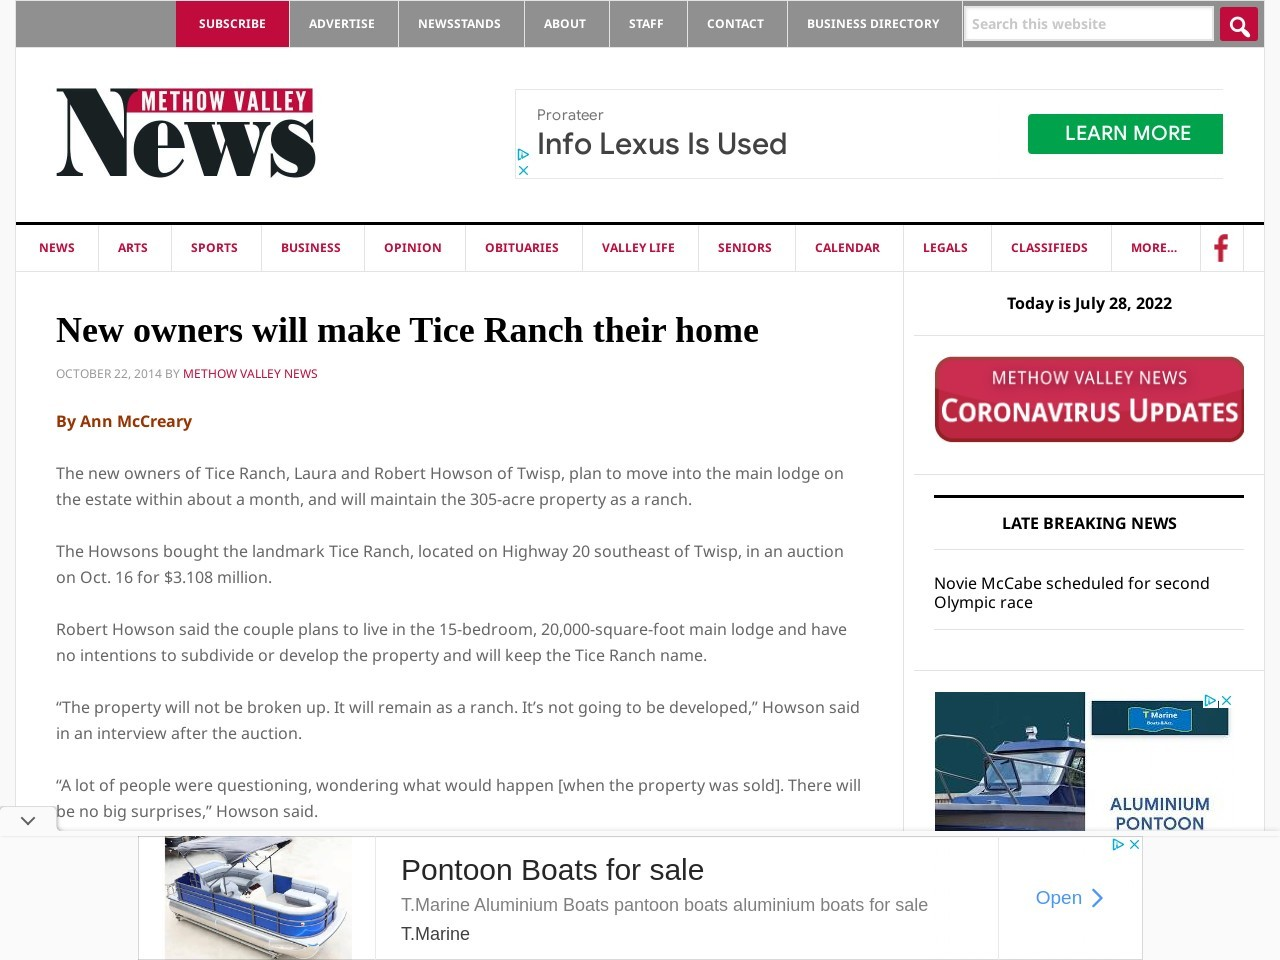 New owners will make Tice Ranch their home